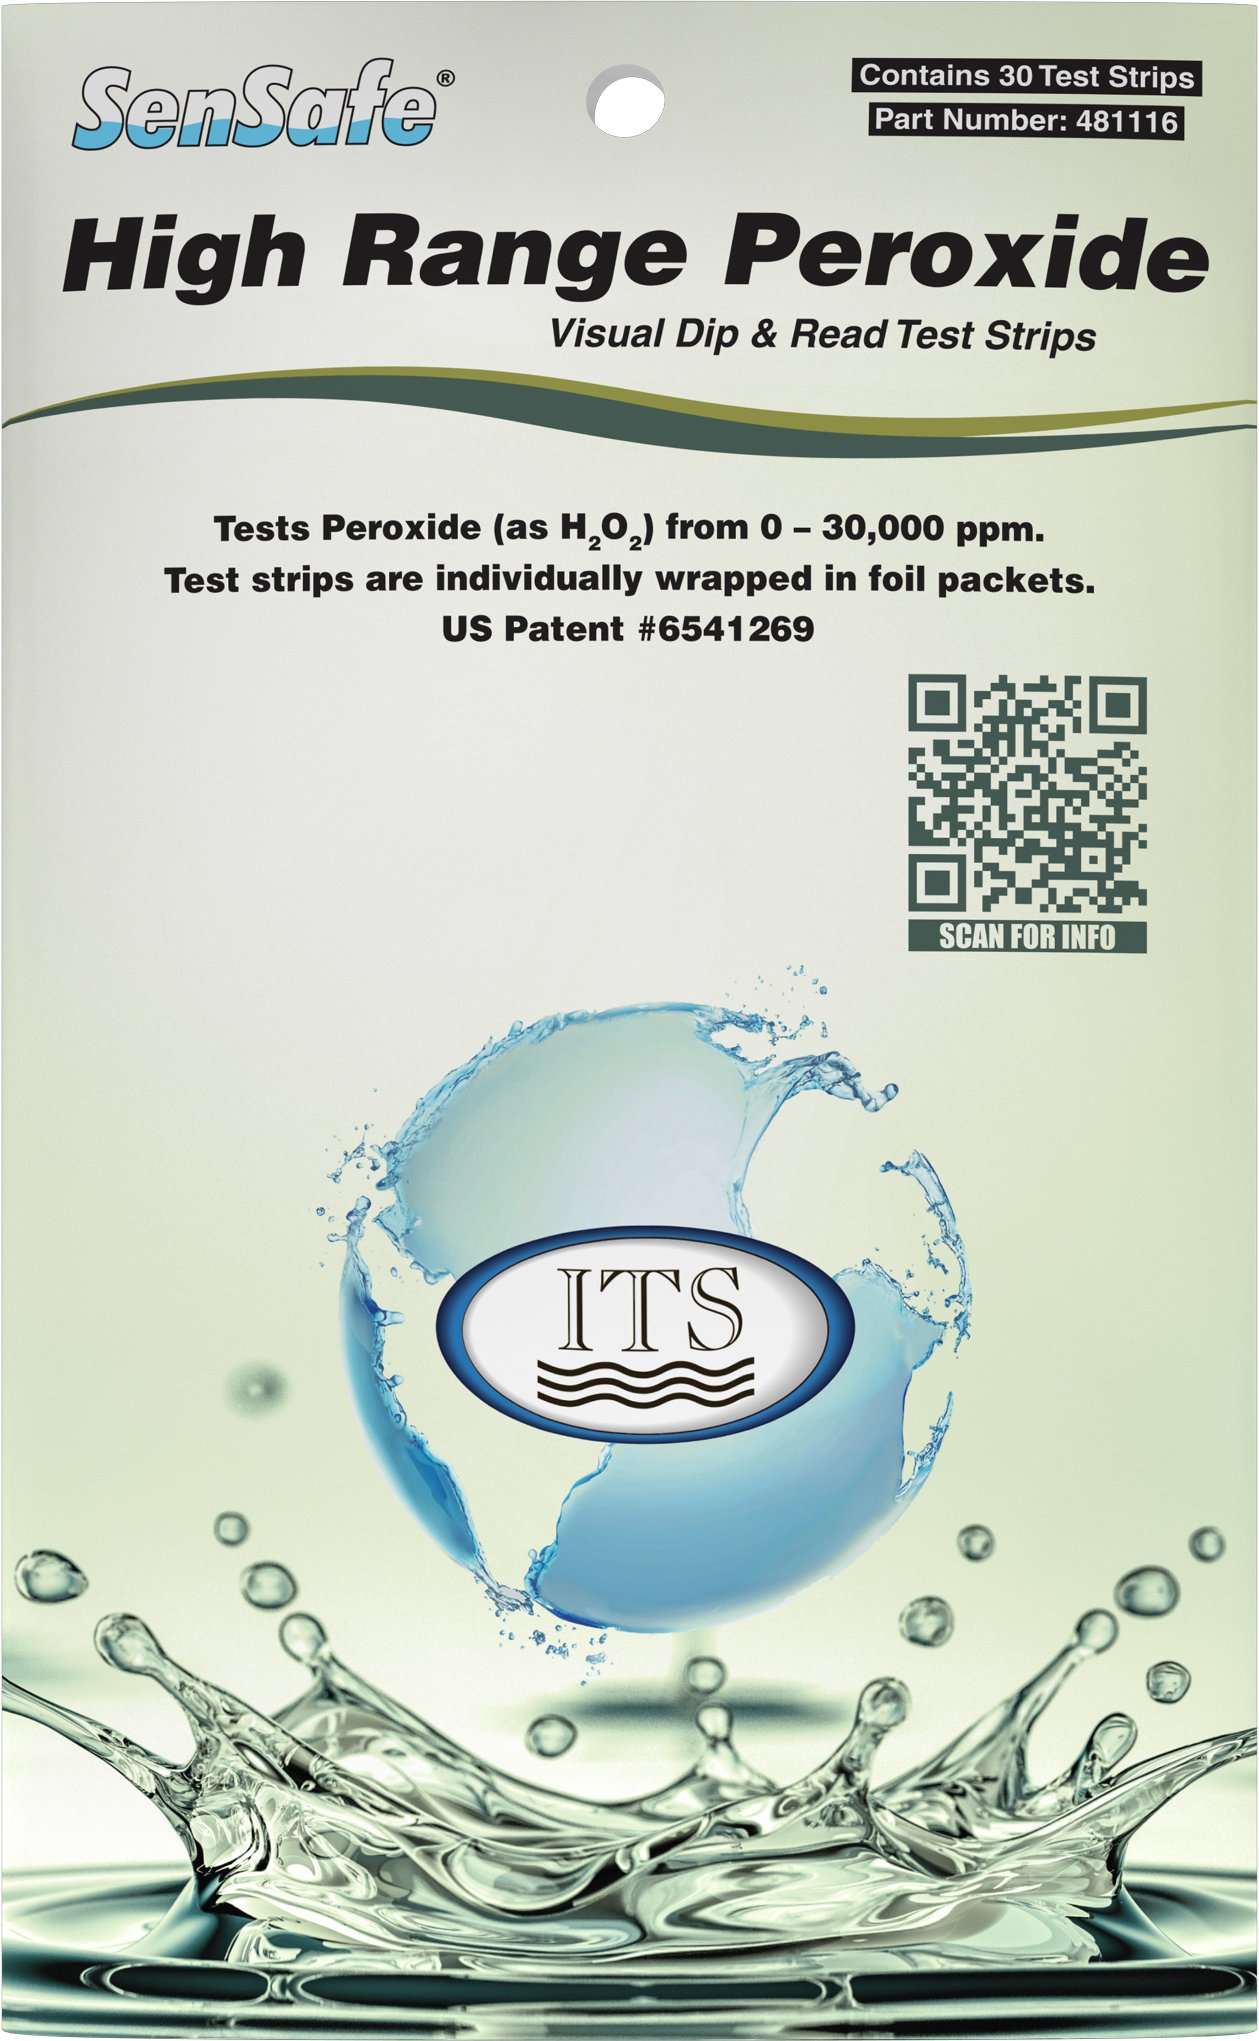 Industrial Test Systems WaterWorks 481116 Peroxide Test Strip, High Range, 32 Seconds Test Time, 0-30000 ppm Range (Pack of 30) by Industrial Test Systems